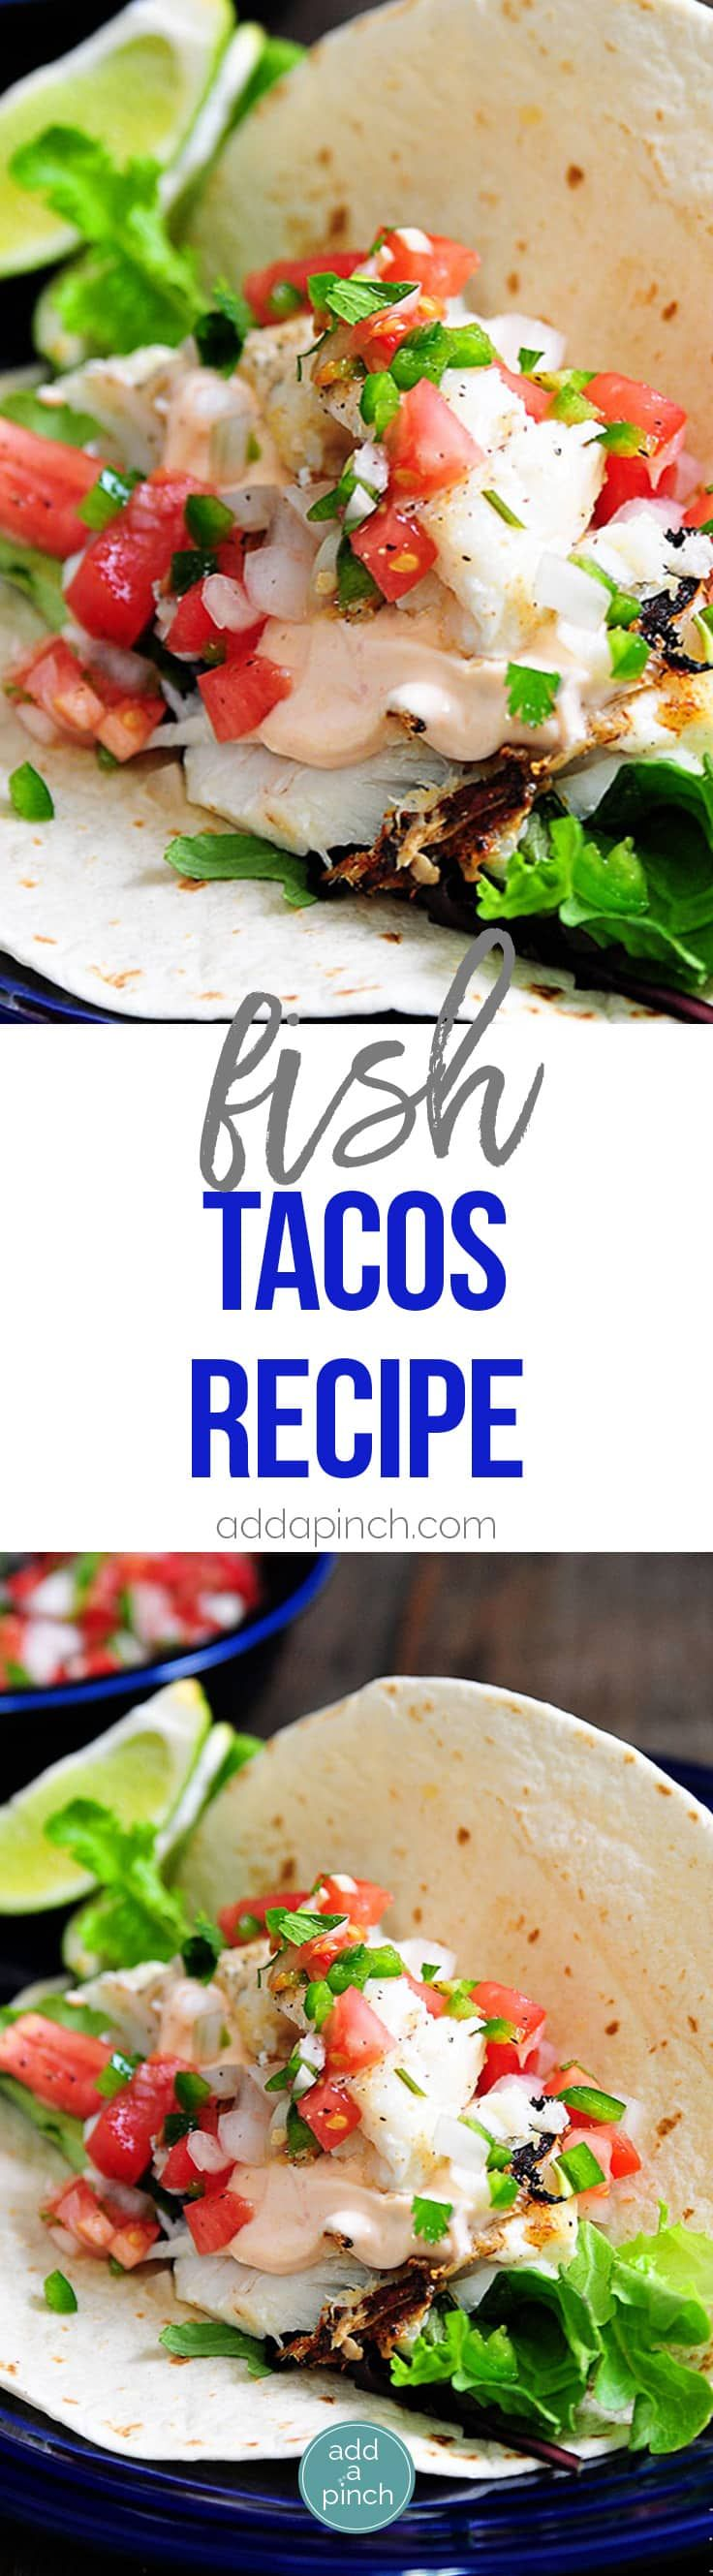 Fish Tacos Recipe - Made of flaky white fish, these fish tacos are ready in less than 30 minutes and always a favorite! // addapinch.com